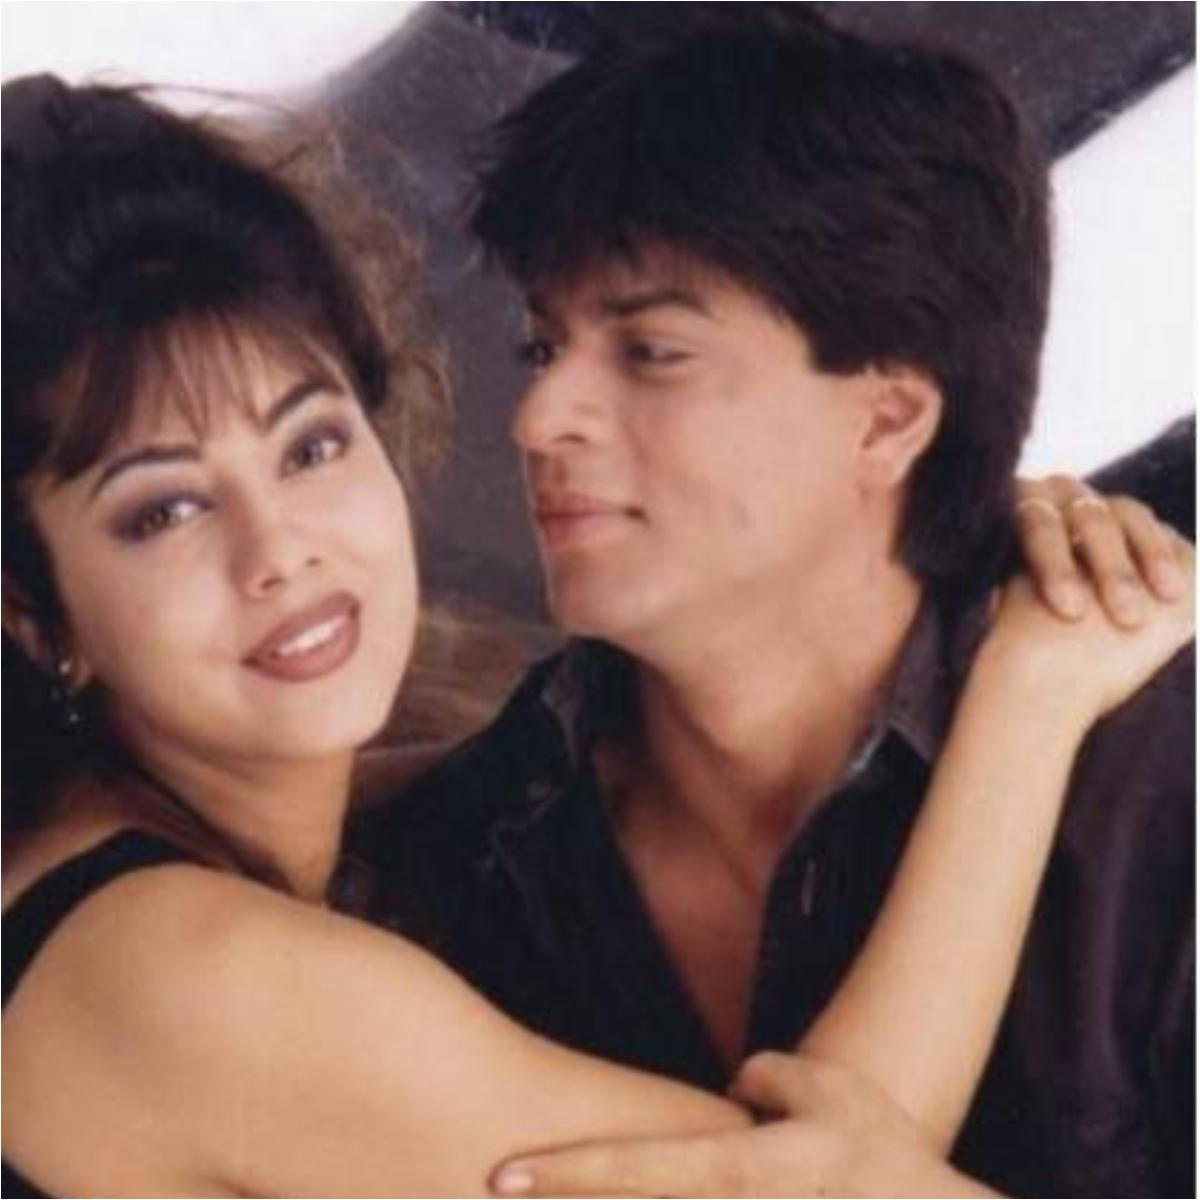 Here's all you need to know about Shah Rukh Khan and Gauri Khan's love story